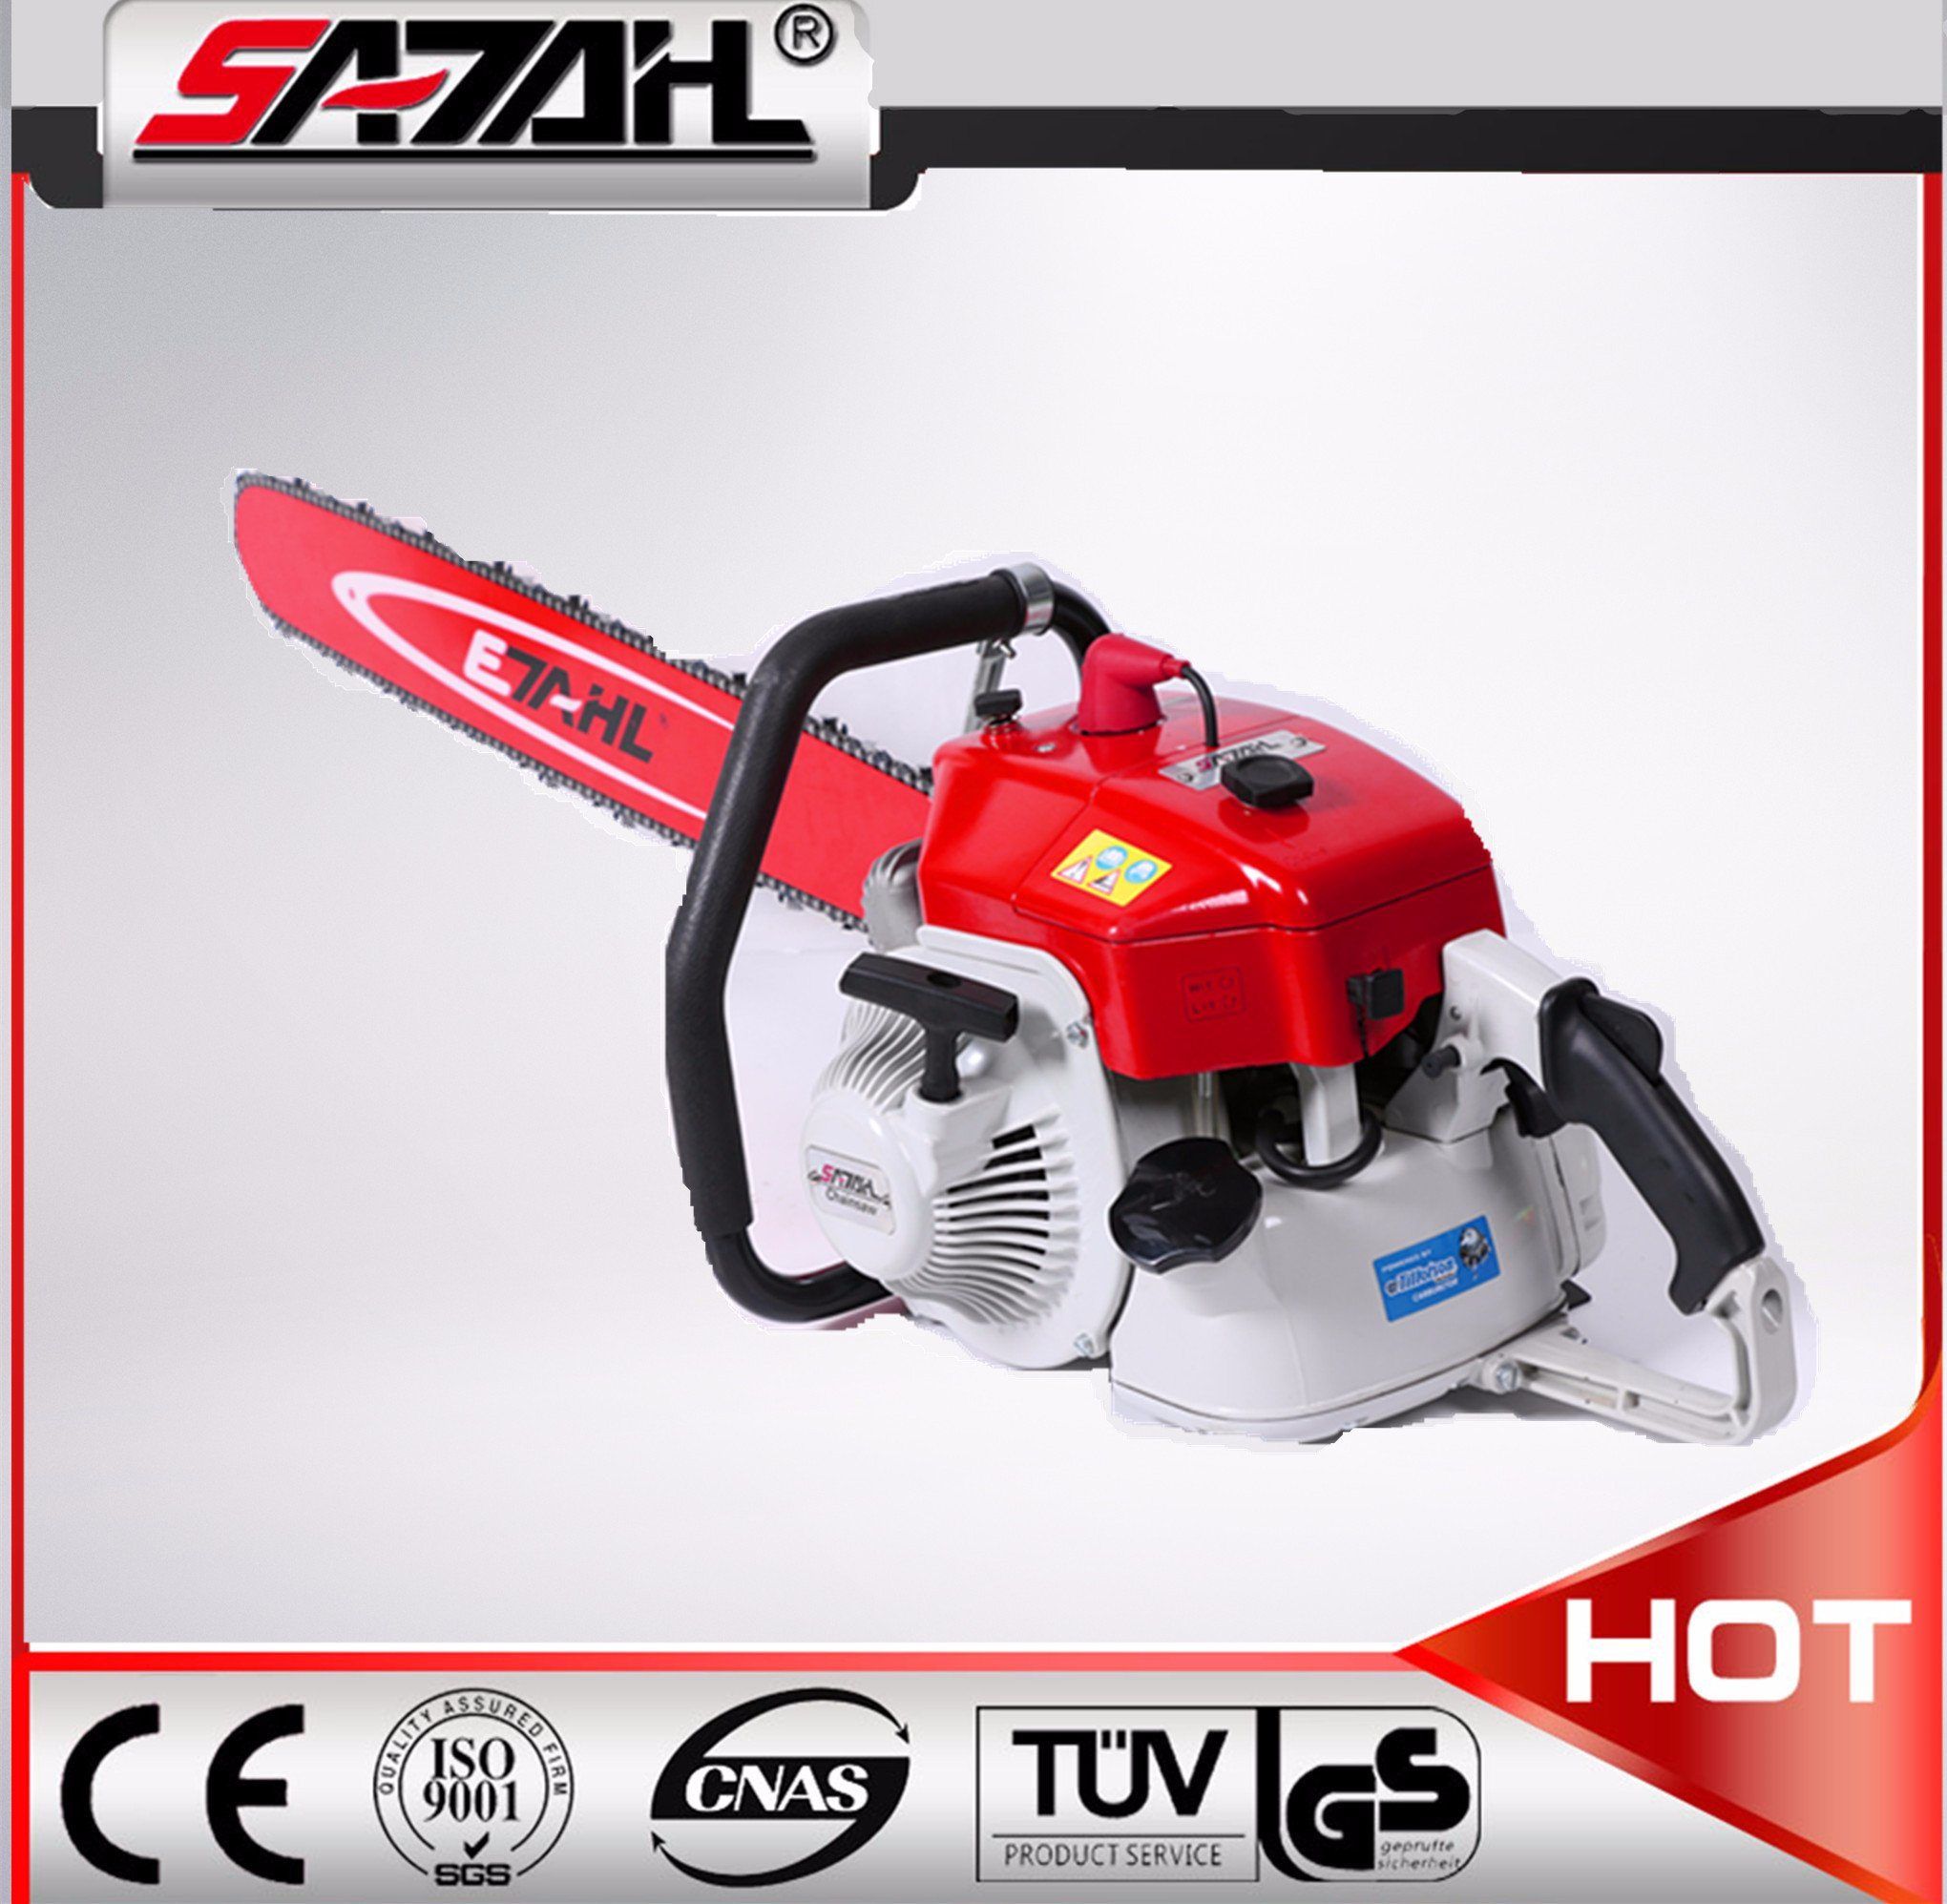 Hot Sale with Super Quality 070 Chain Saw